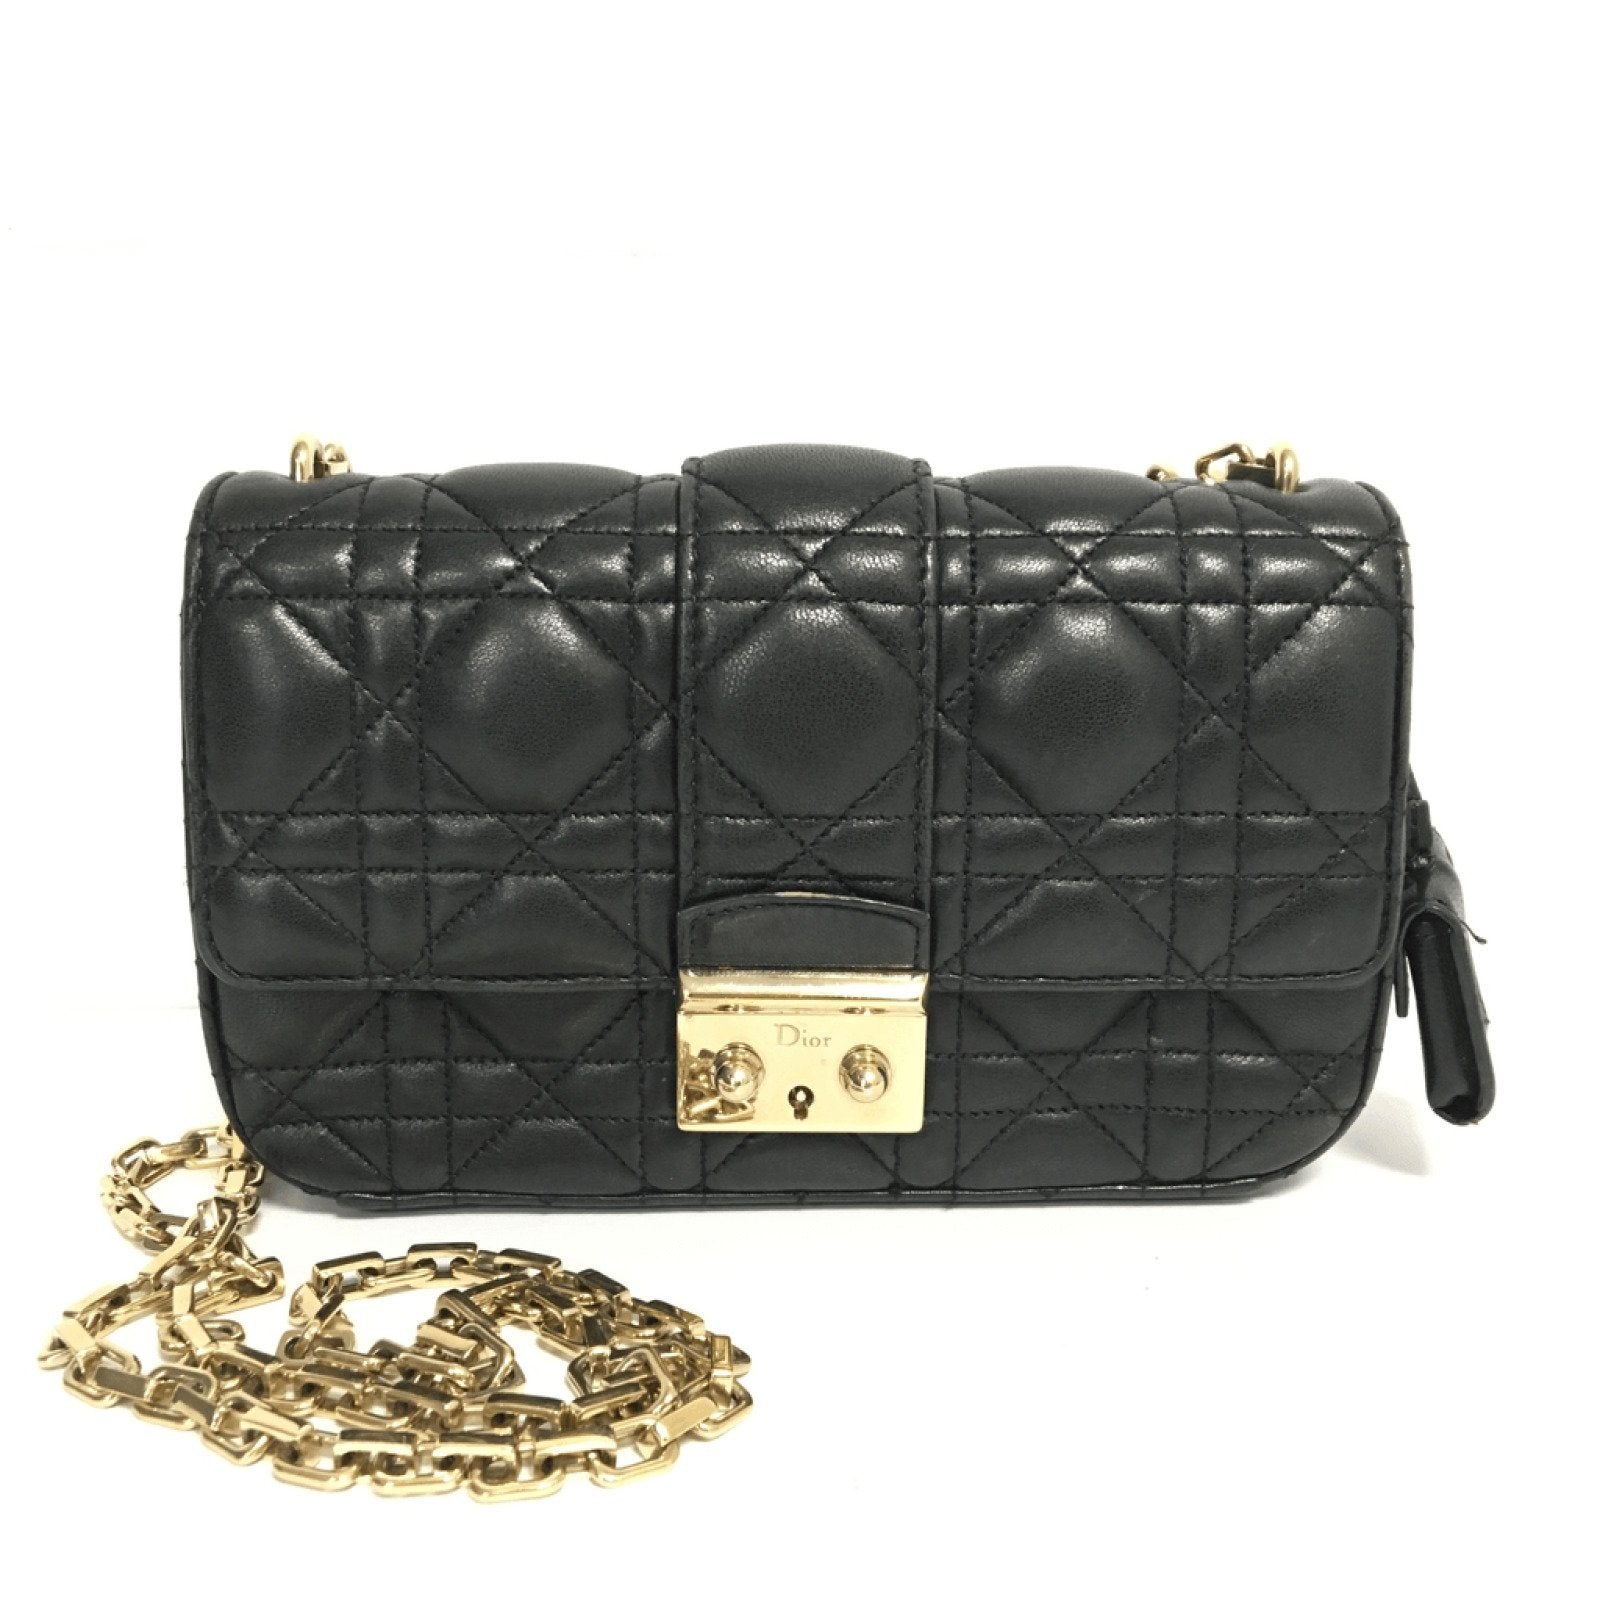 70a2144fe22 Dior Black Cannage Quilted Lambskin Small MIss Dior - Oliver Jewellery